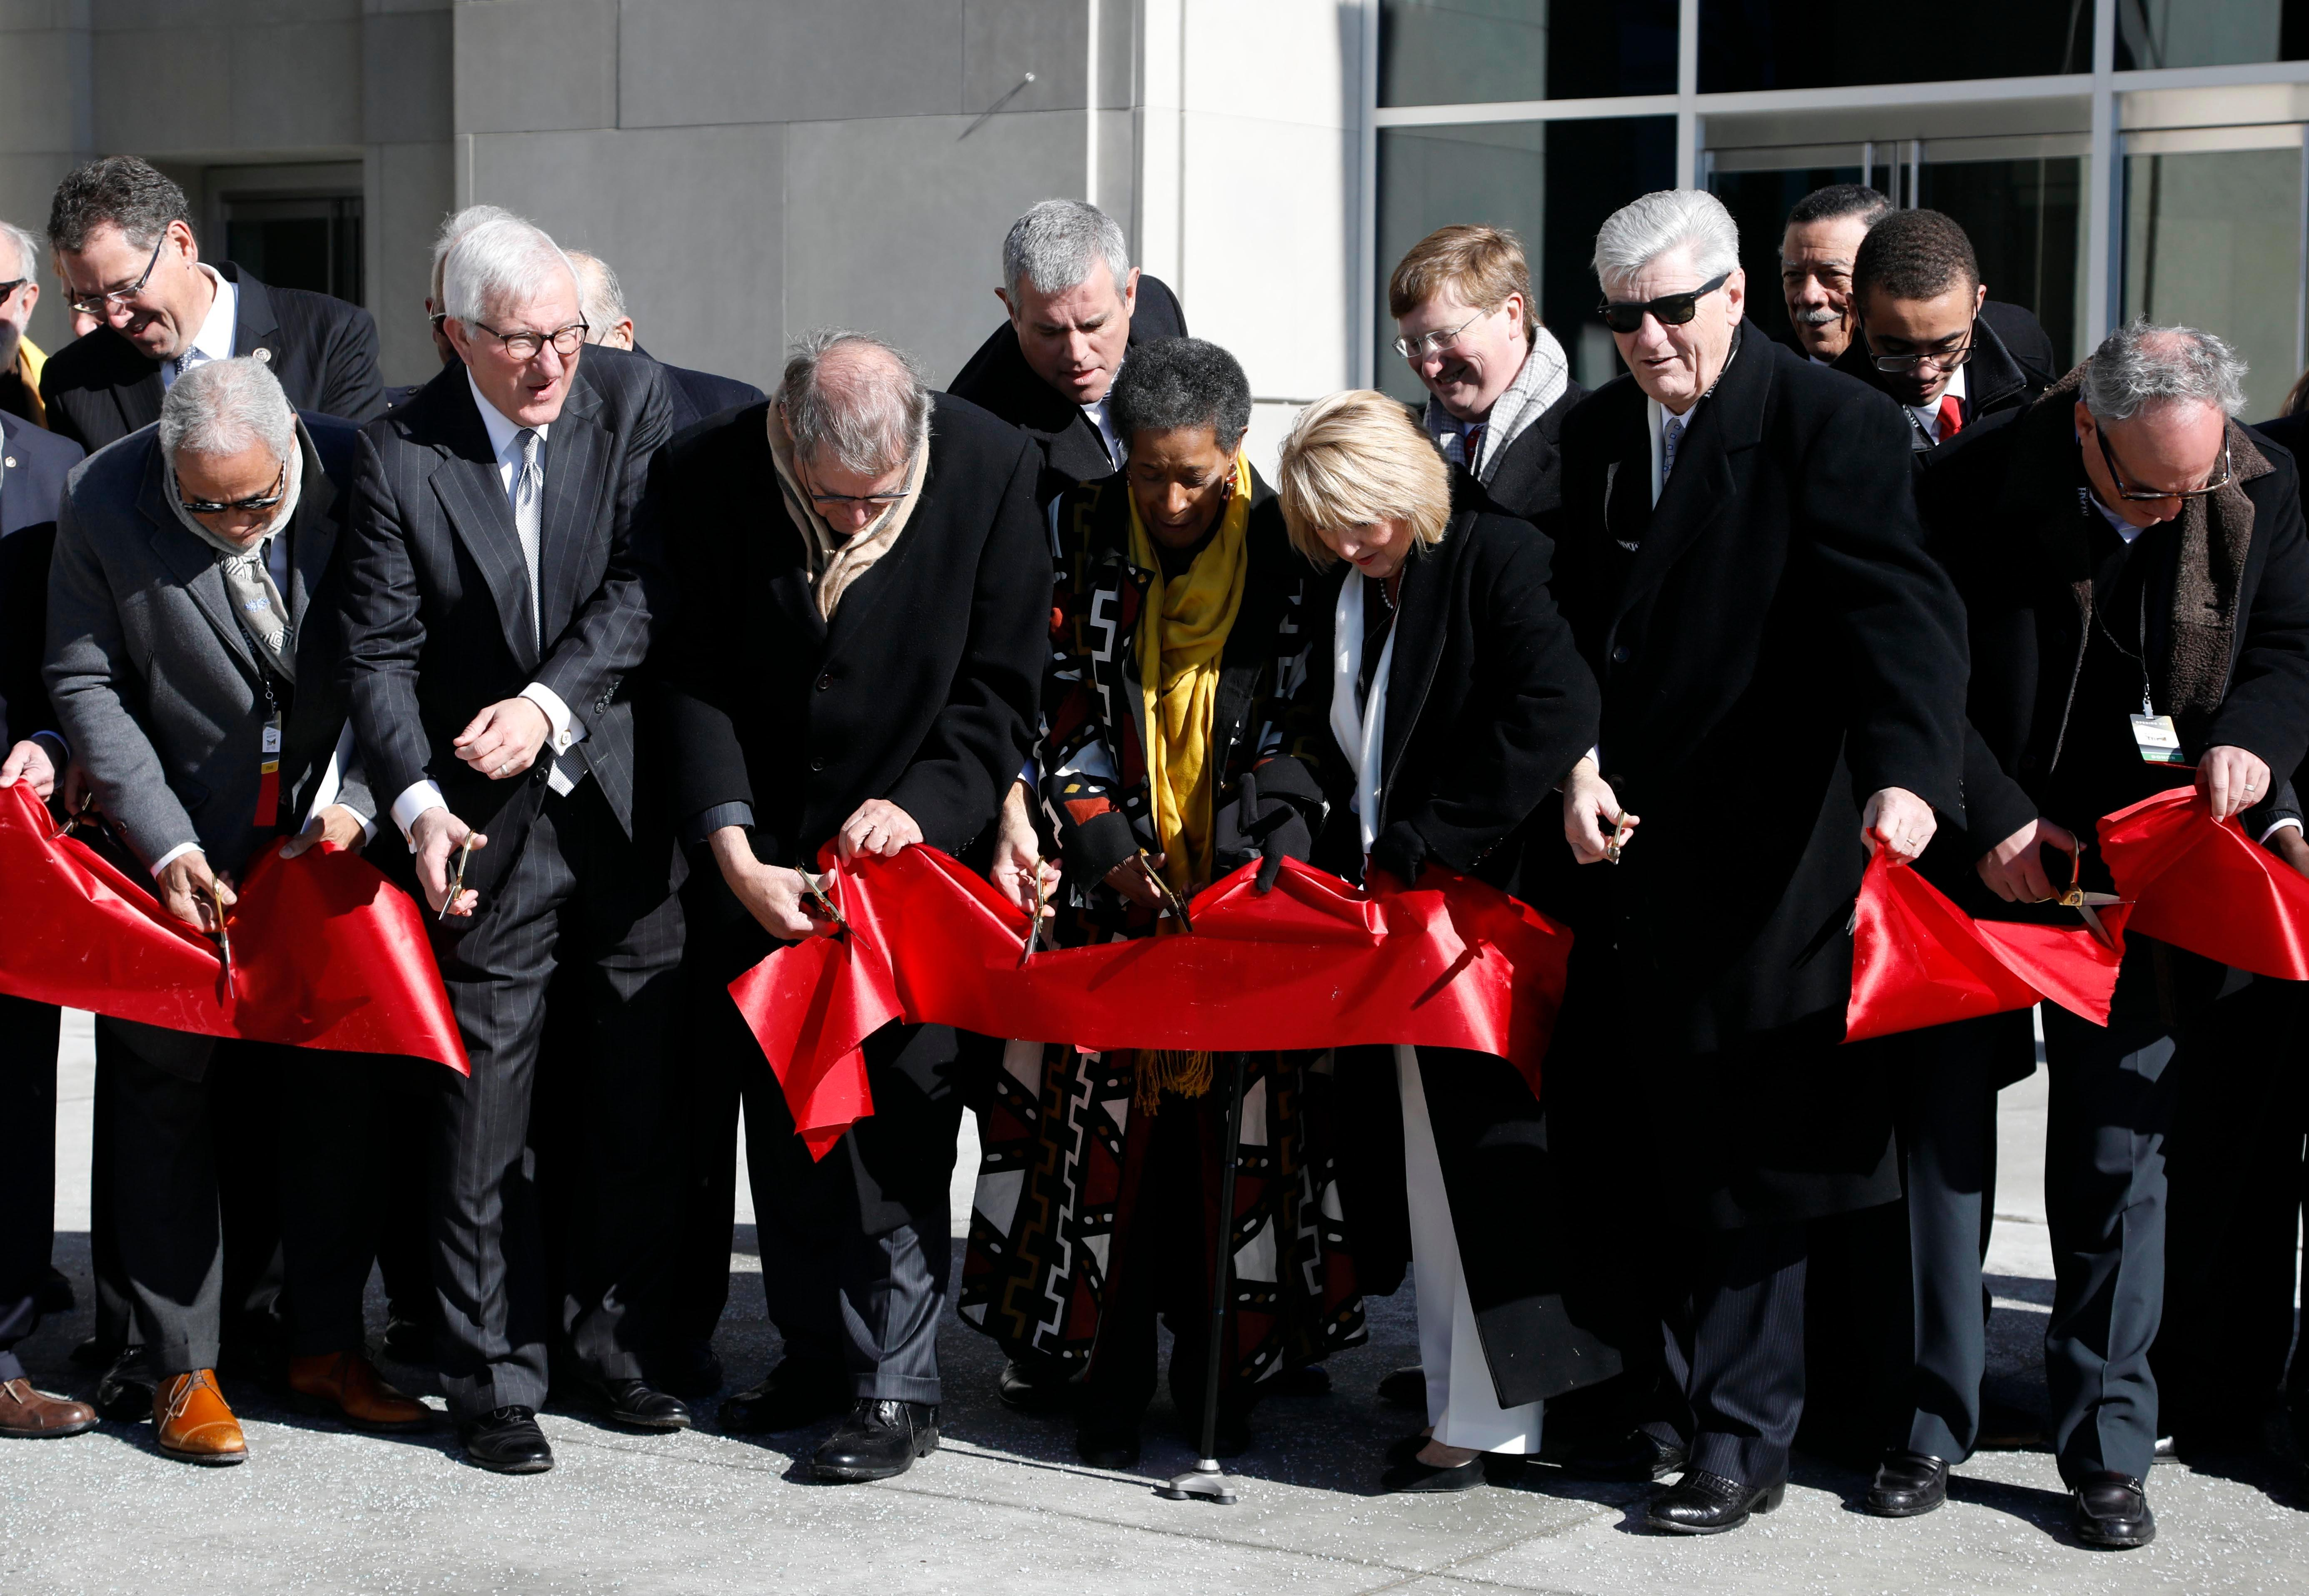 Various current and past public officials join Mississippi Gov. Phil Bryant, second from right, and Myrlie Evers, center, civil rights activist and widow of civil rights leader Medgar Evers, as they cut open the oversized ribbon symbolizing the opening of the two museums, the Museum of Mississippi History and the Mississippi Civil Rights Museum, Saturday, Dec. 9, 2017, in Jackson, Miss. (AP Photo/Rogelio V. Solis)